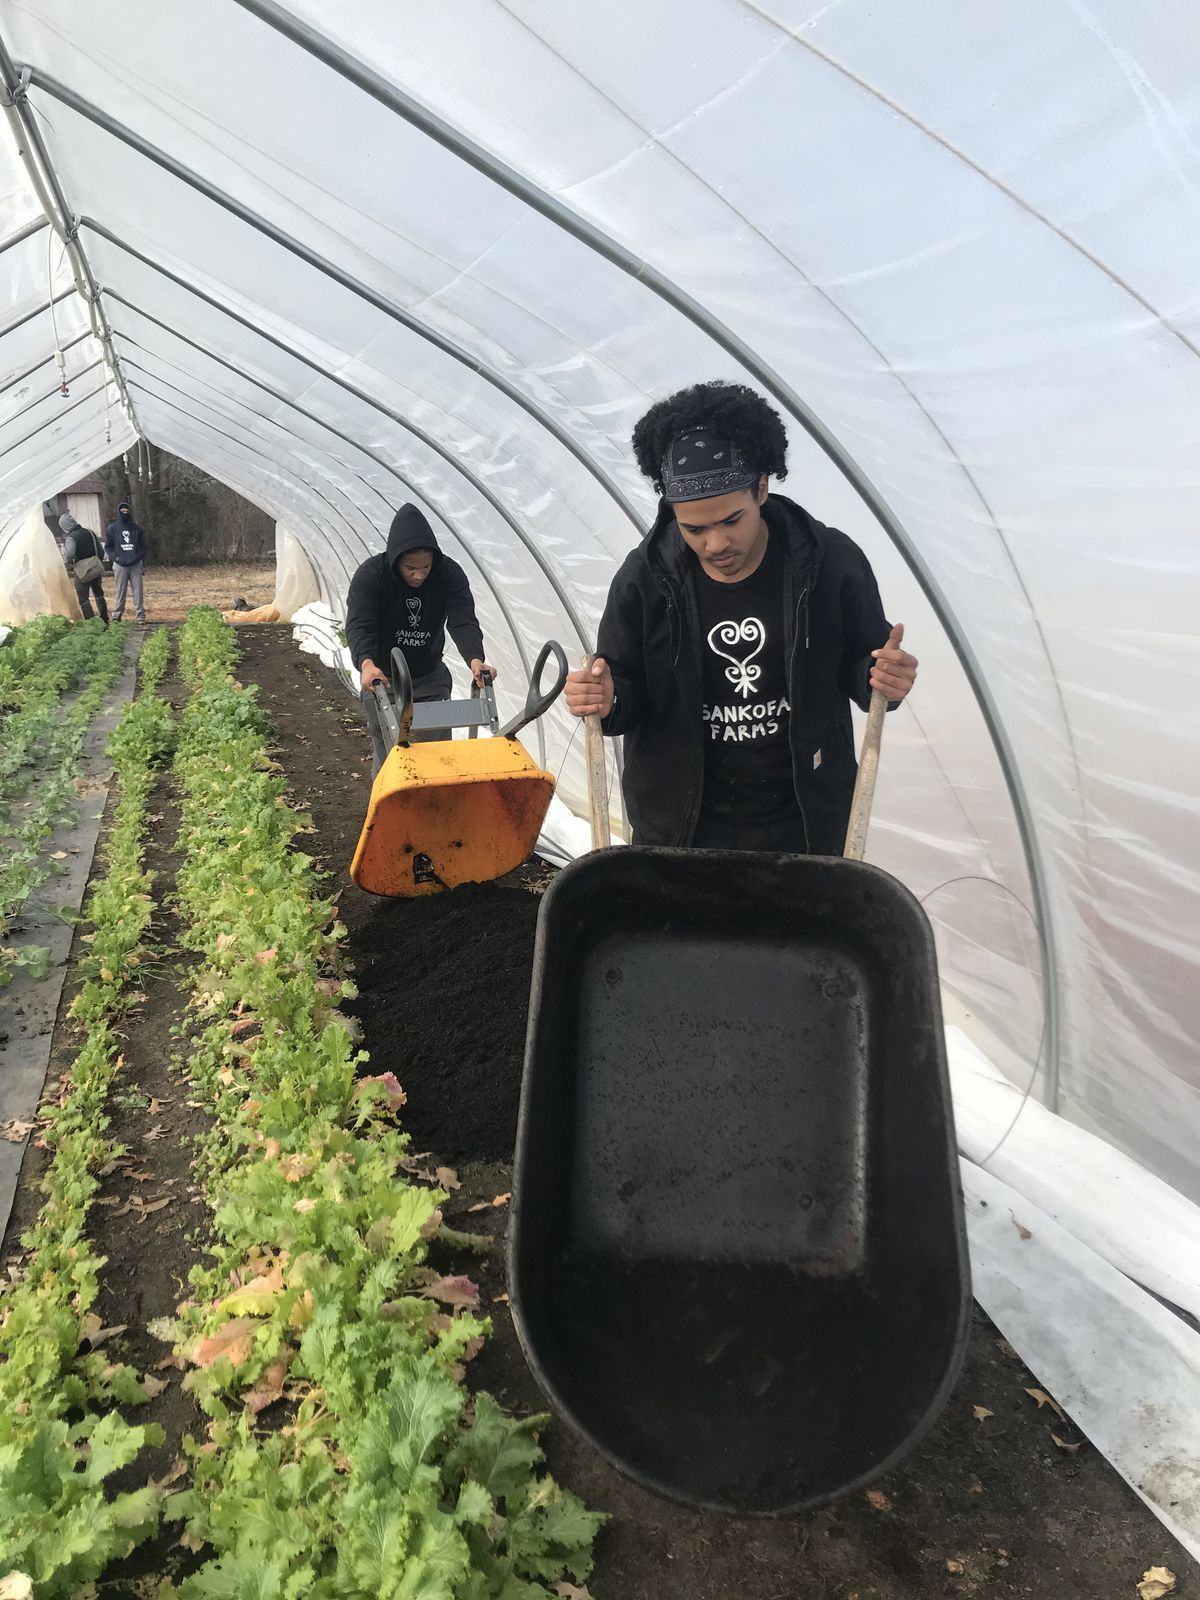 Two people pushing wheelbarrows inside a greenhouse where rows of greens are growing.